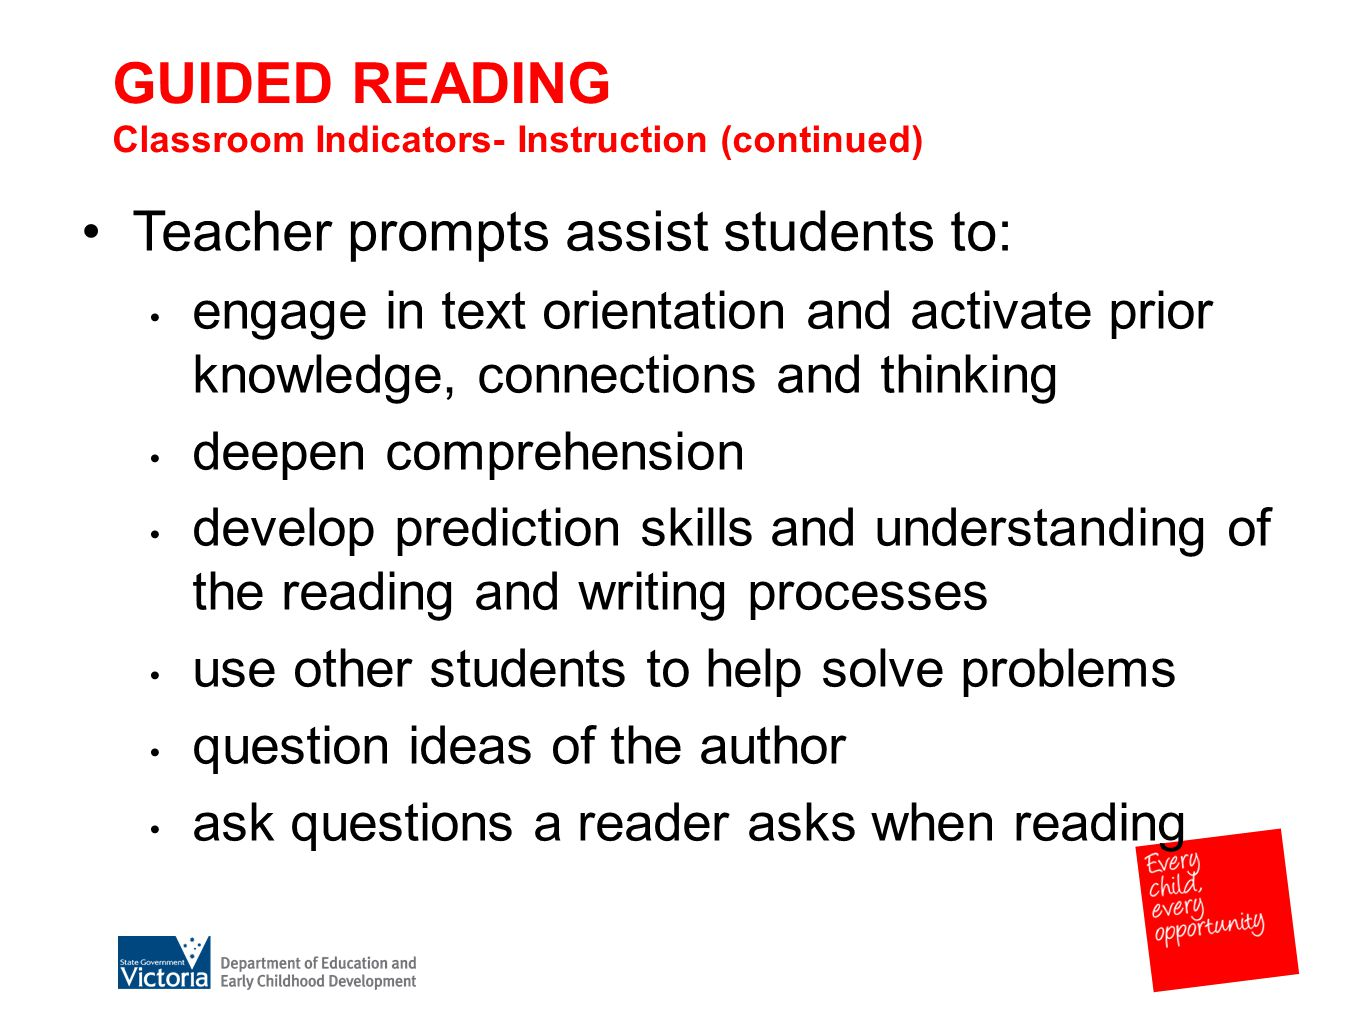 GUIDED READING Classroom Indicators- Instruction (continued) Teacher prompts assist students to: engage in text orientation and activate prior knowledge, connections and thinking deepen comprehension develop prediction skills and understanding of the reading and writing processes use other students to help solve problems question ideas of the author ask questions a reader asks when reading